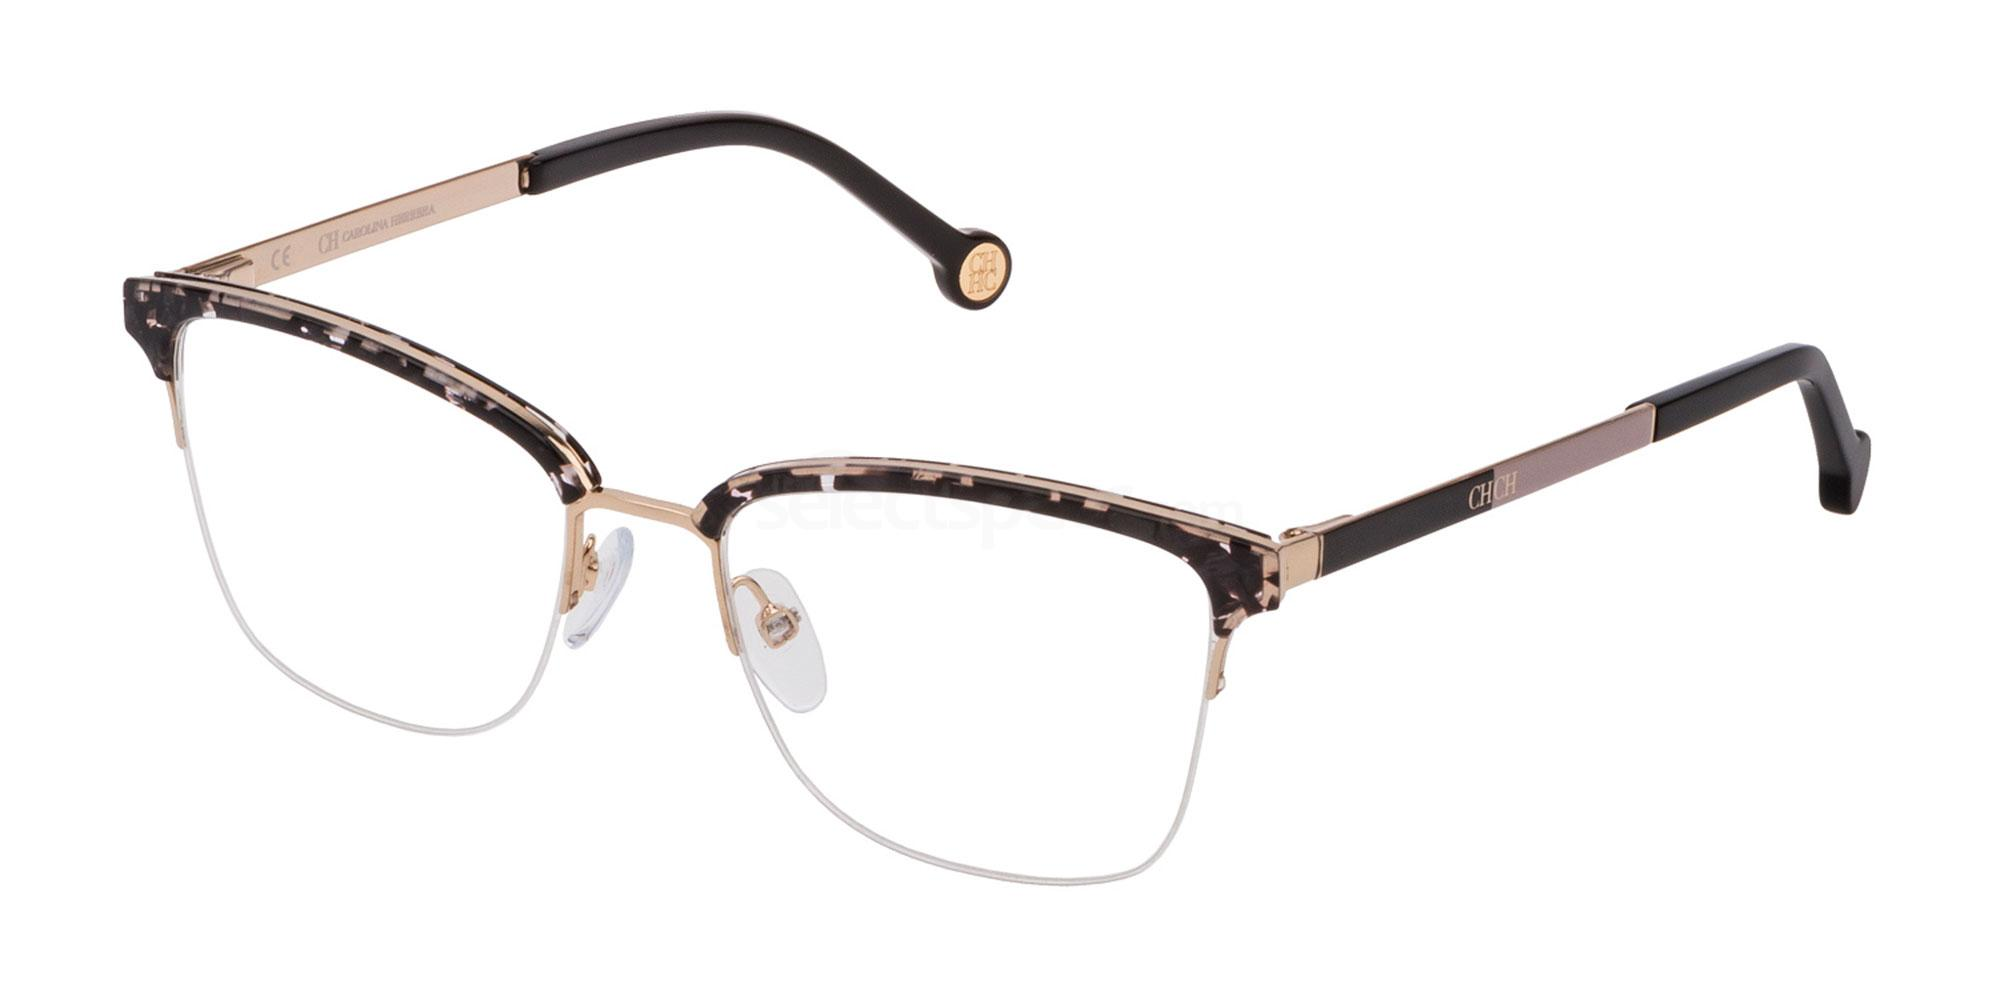 0300 VHE138 Glasses, CH Carolina Herrera